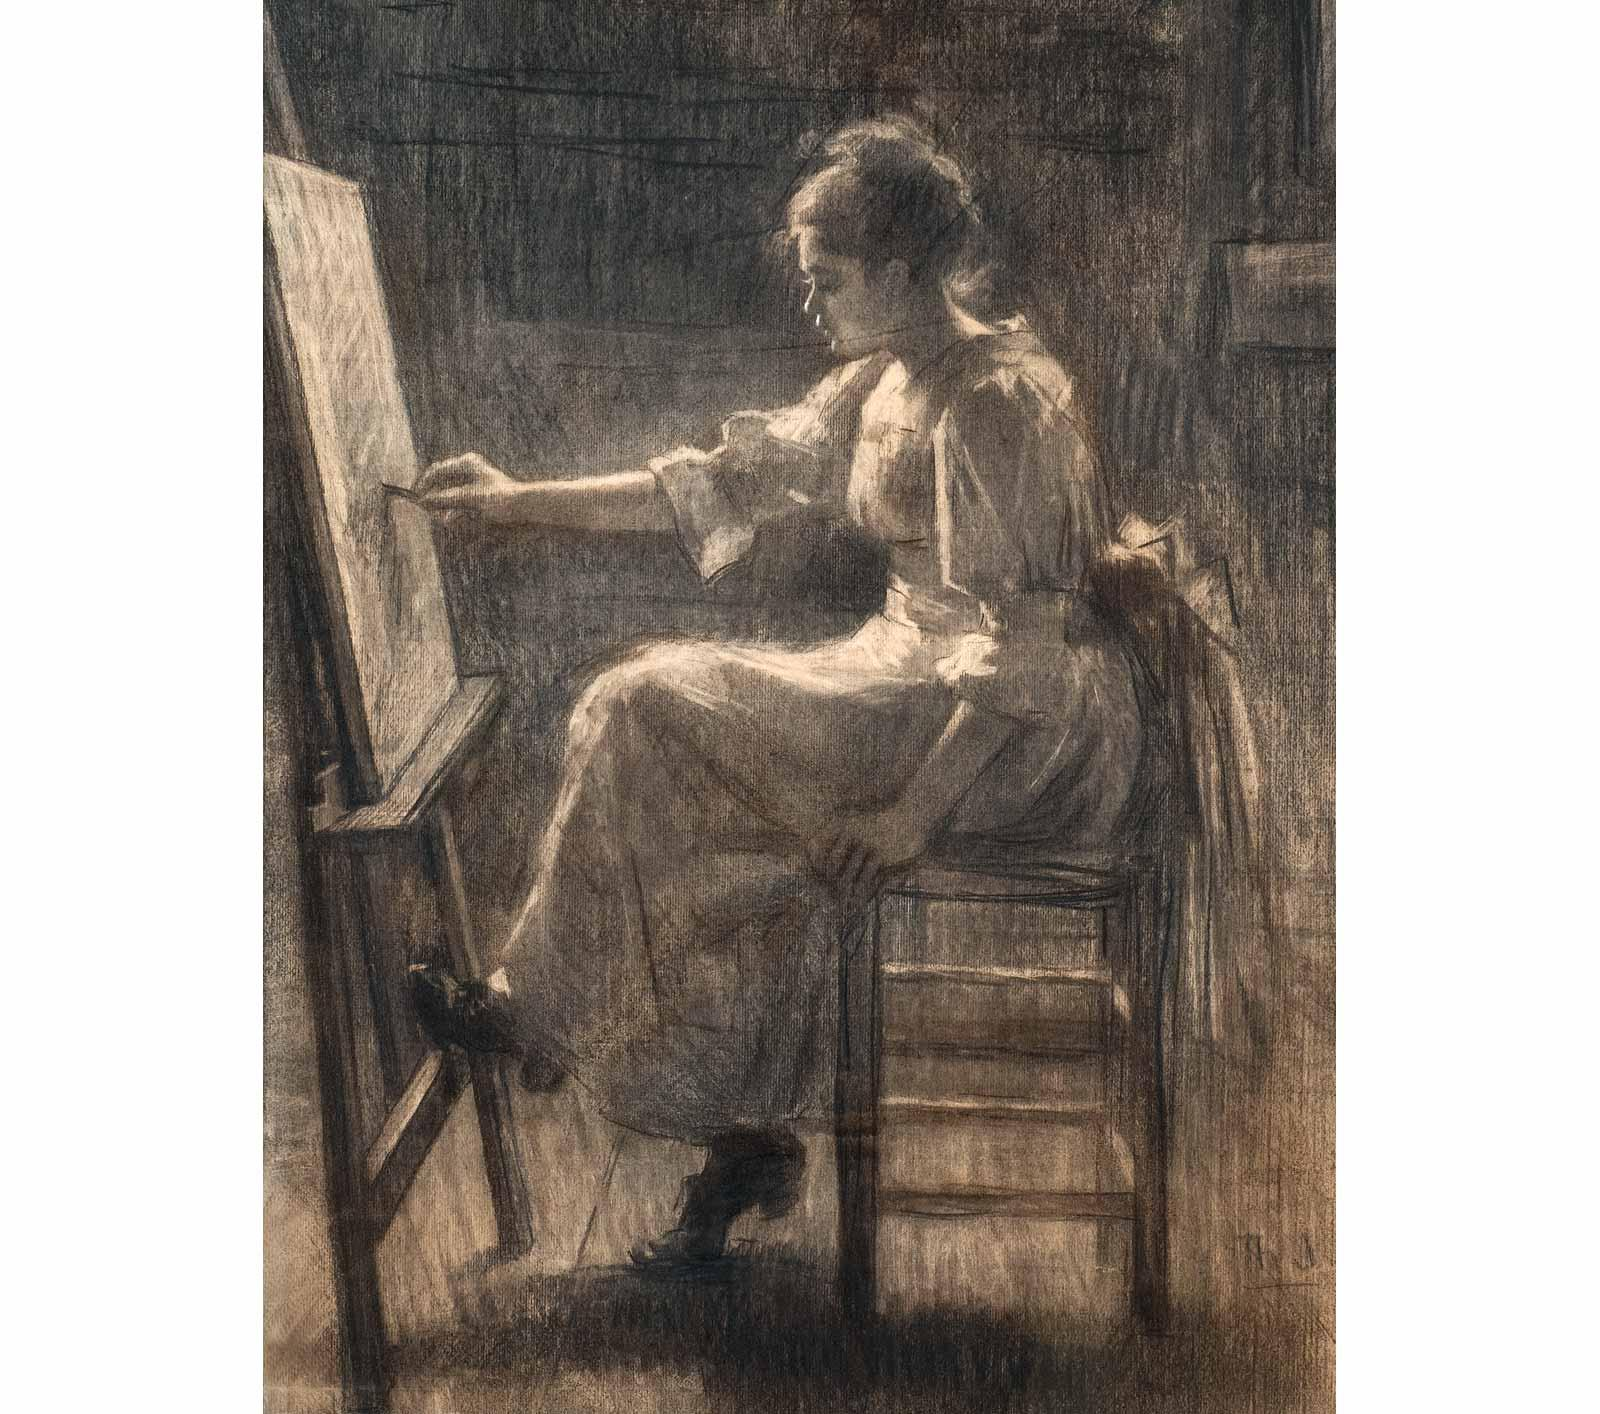 Thérèse Schwartze, 'In the Studio', representing the paintress Lizzy Ansingh, c. 1895.